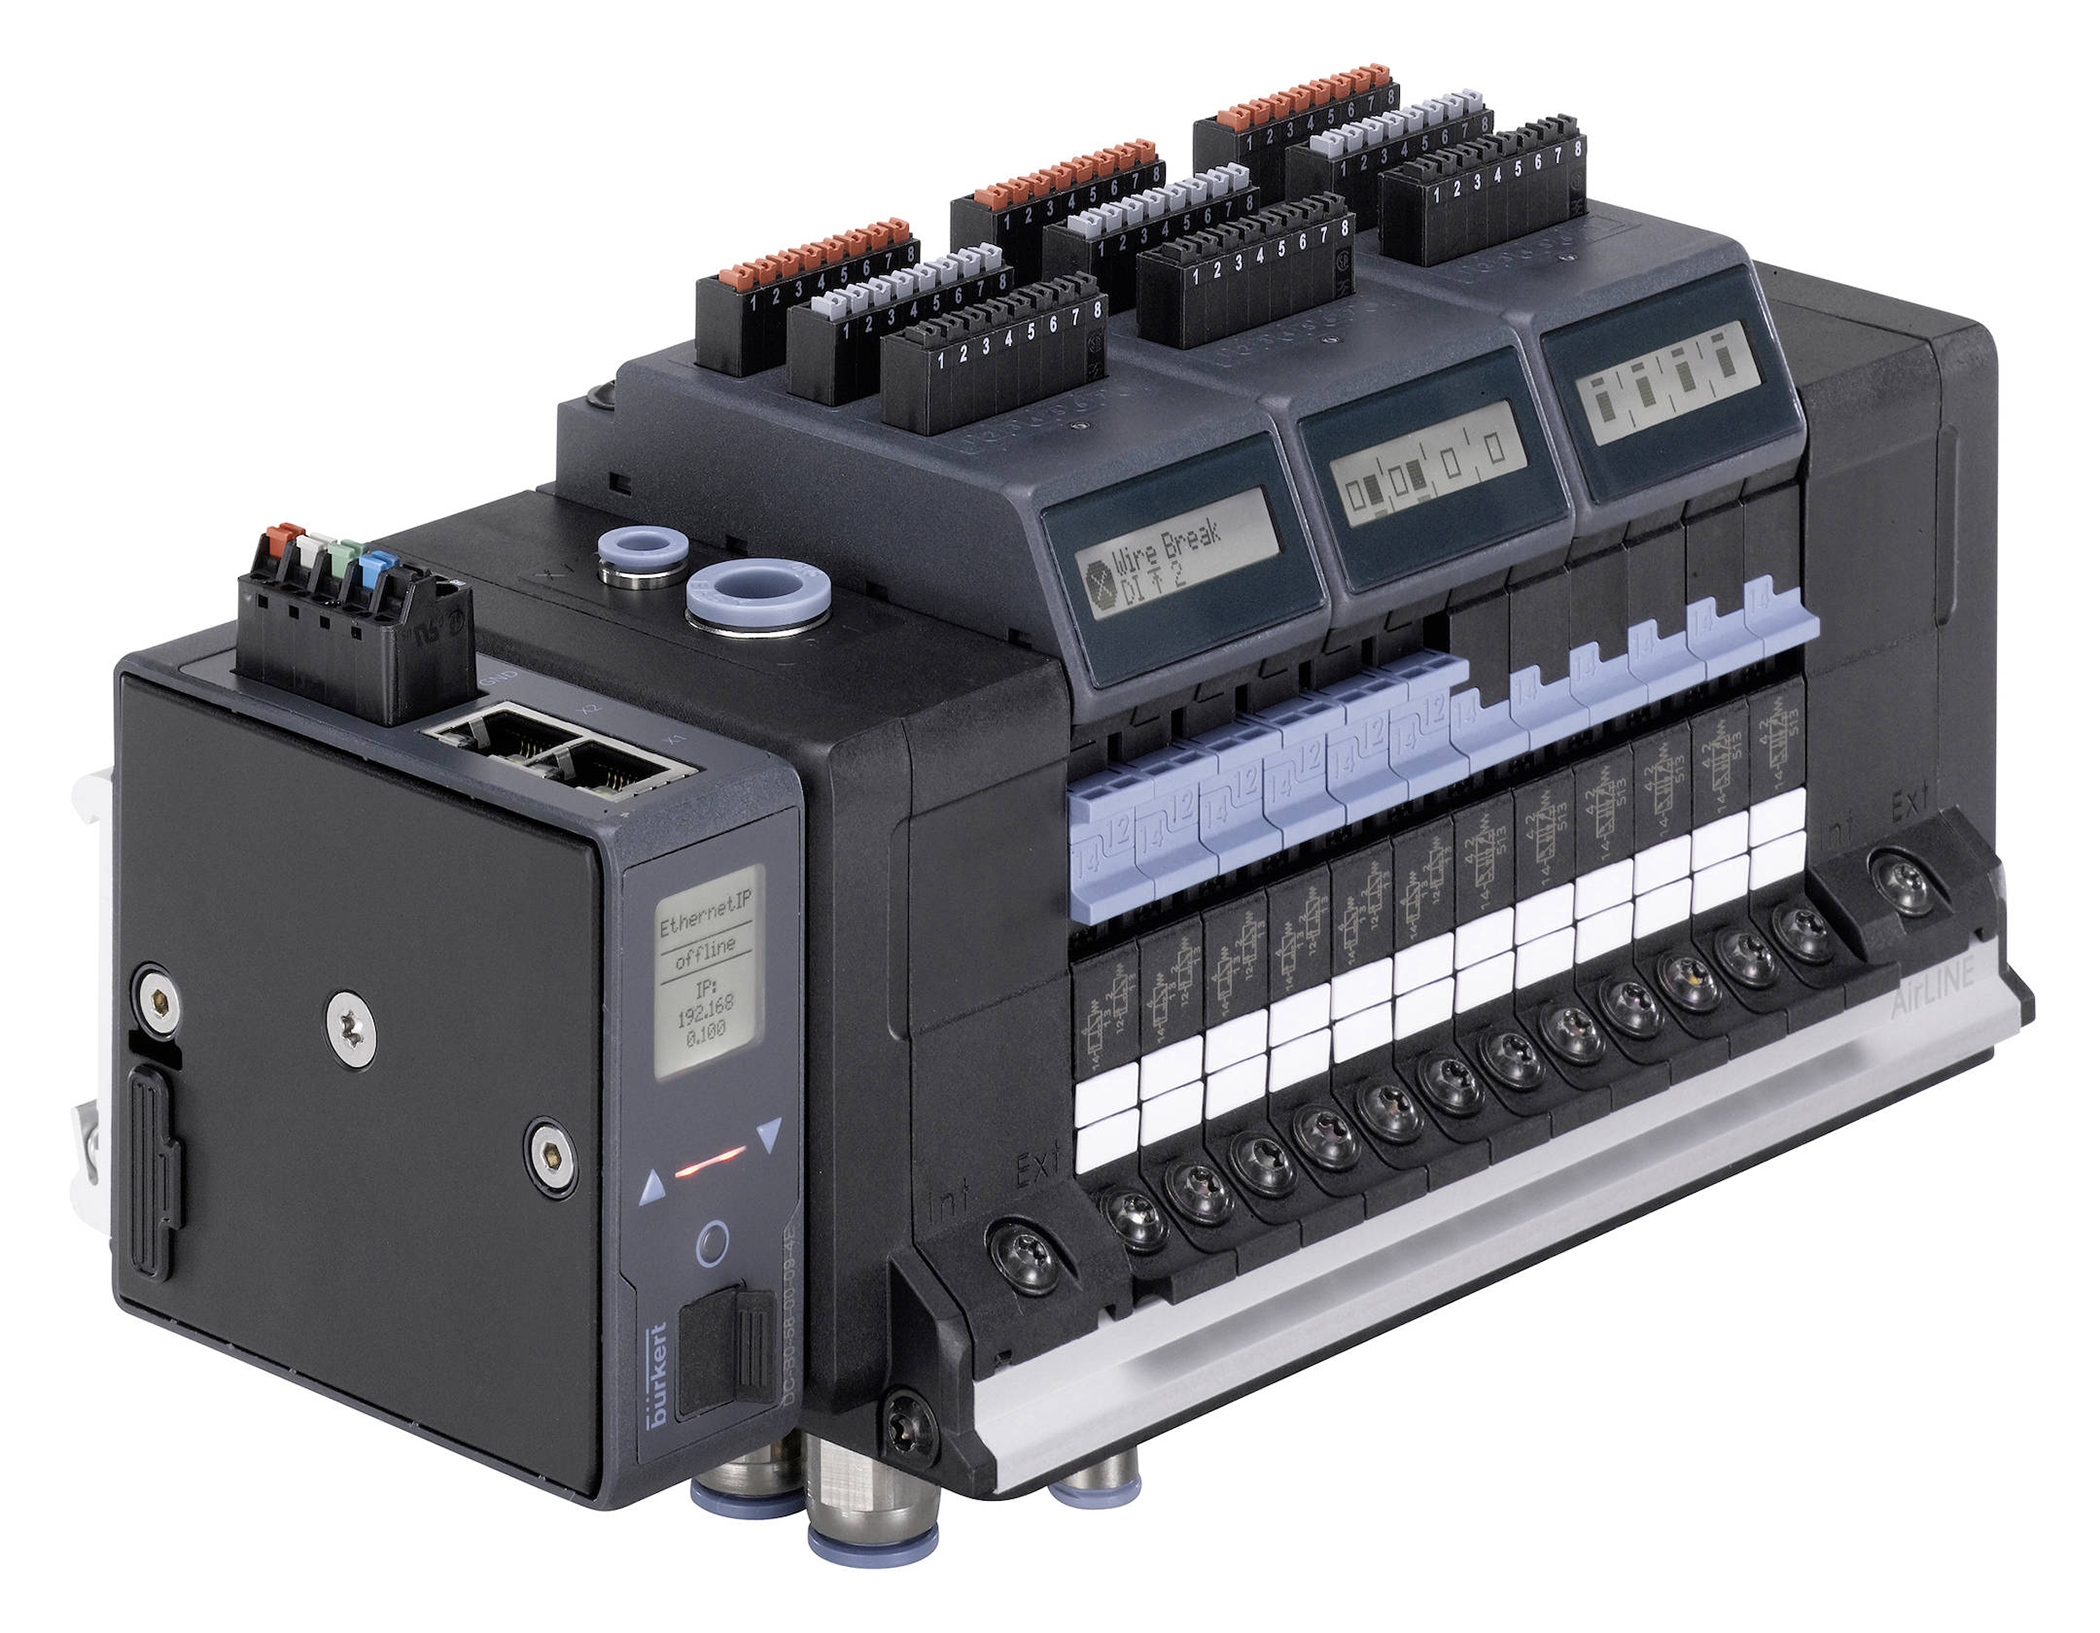 New pneumatic valve island from Bürkert offers improved flexibility and process safety